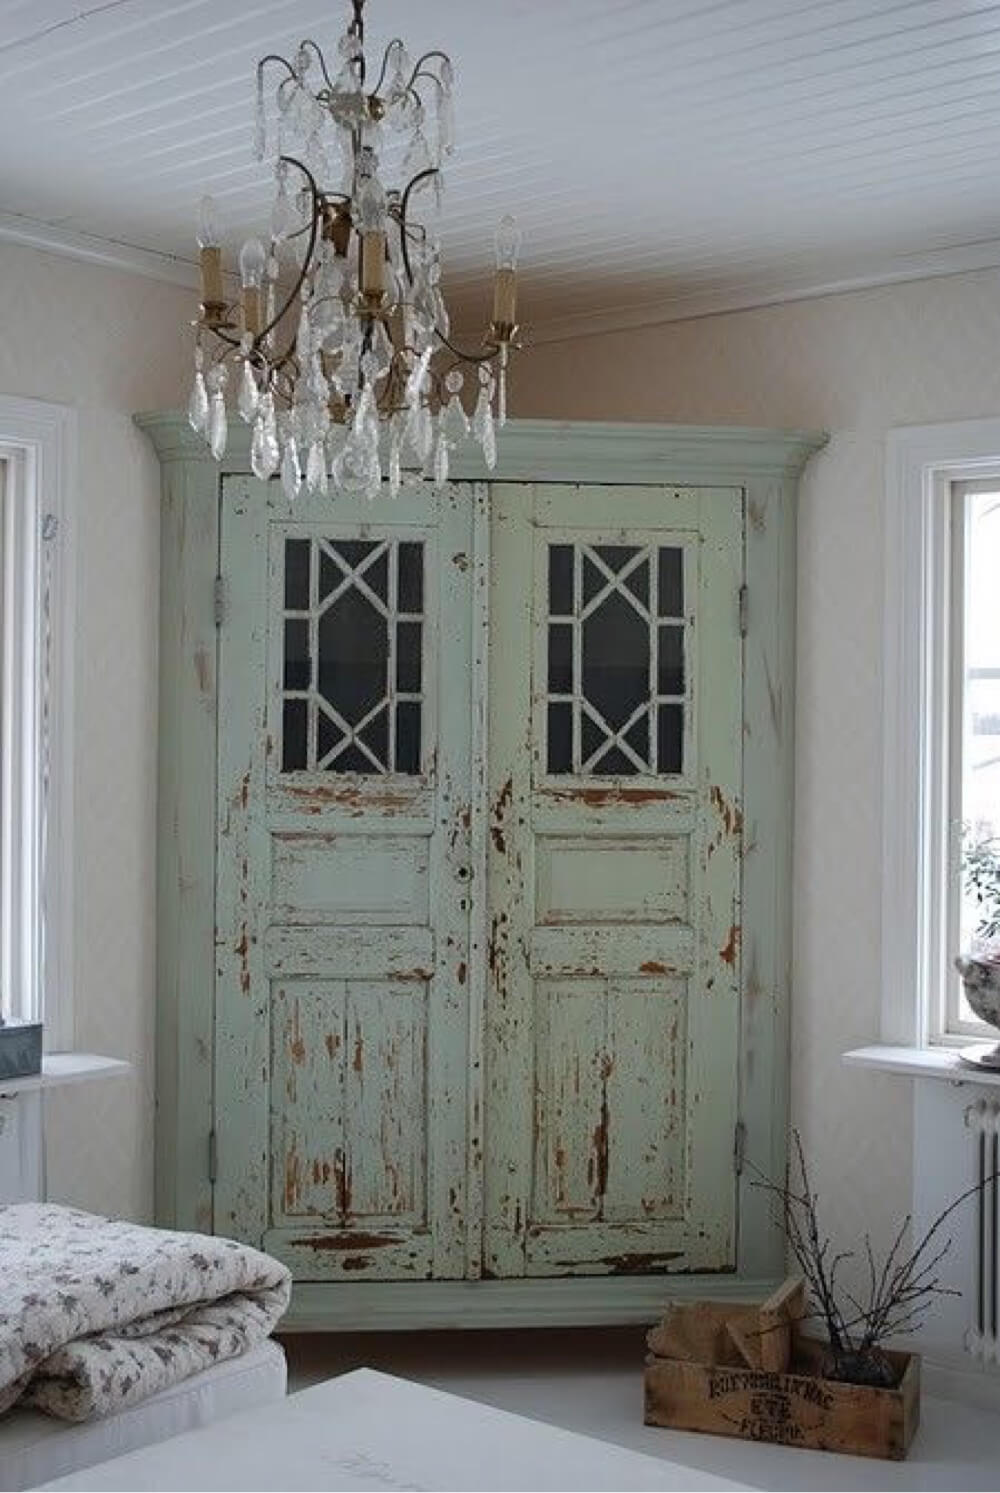 4 custom corner wardrobe made from distressed doors. Interior Design Ideas. Home Design Ideas